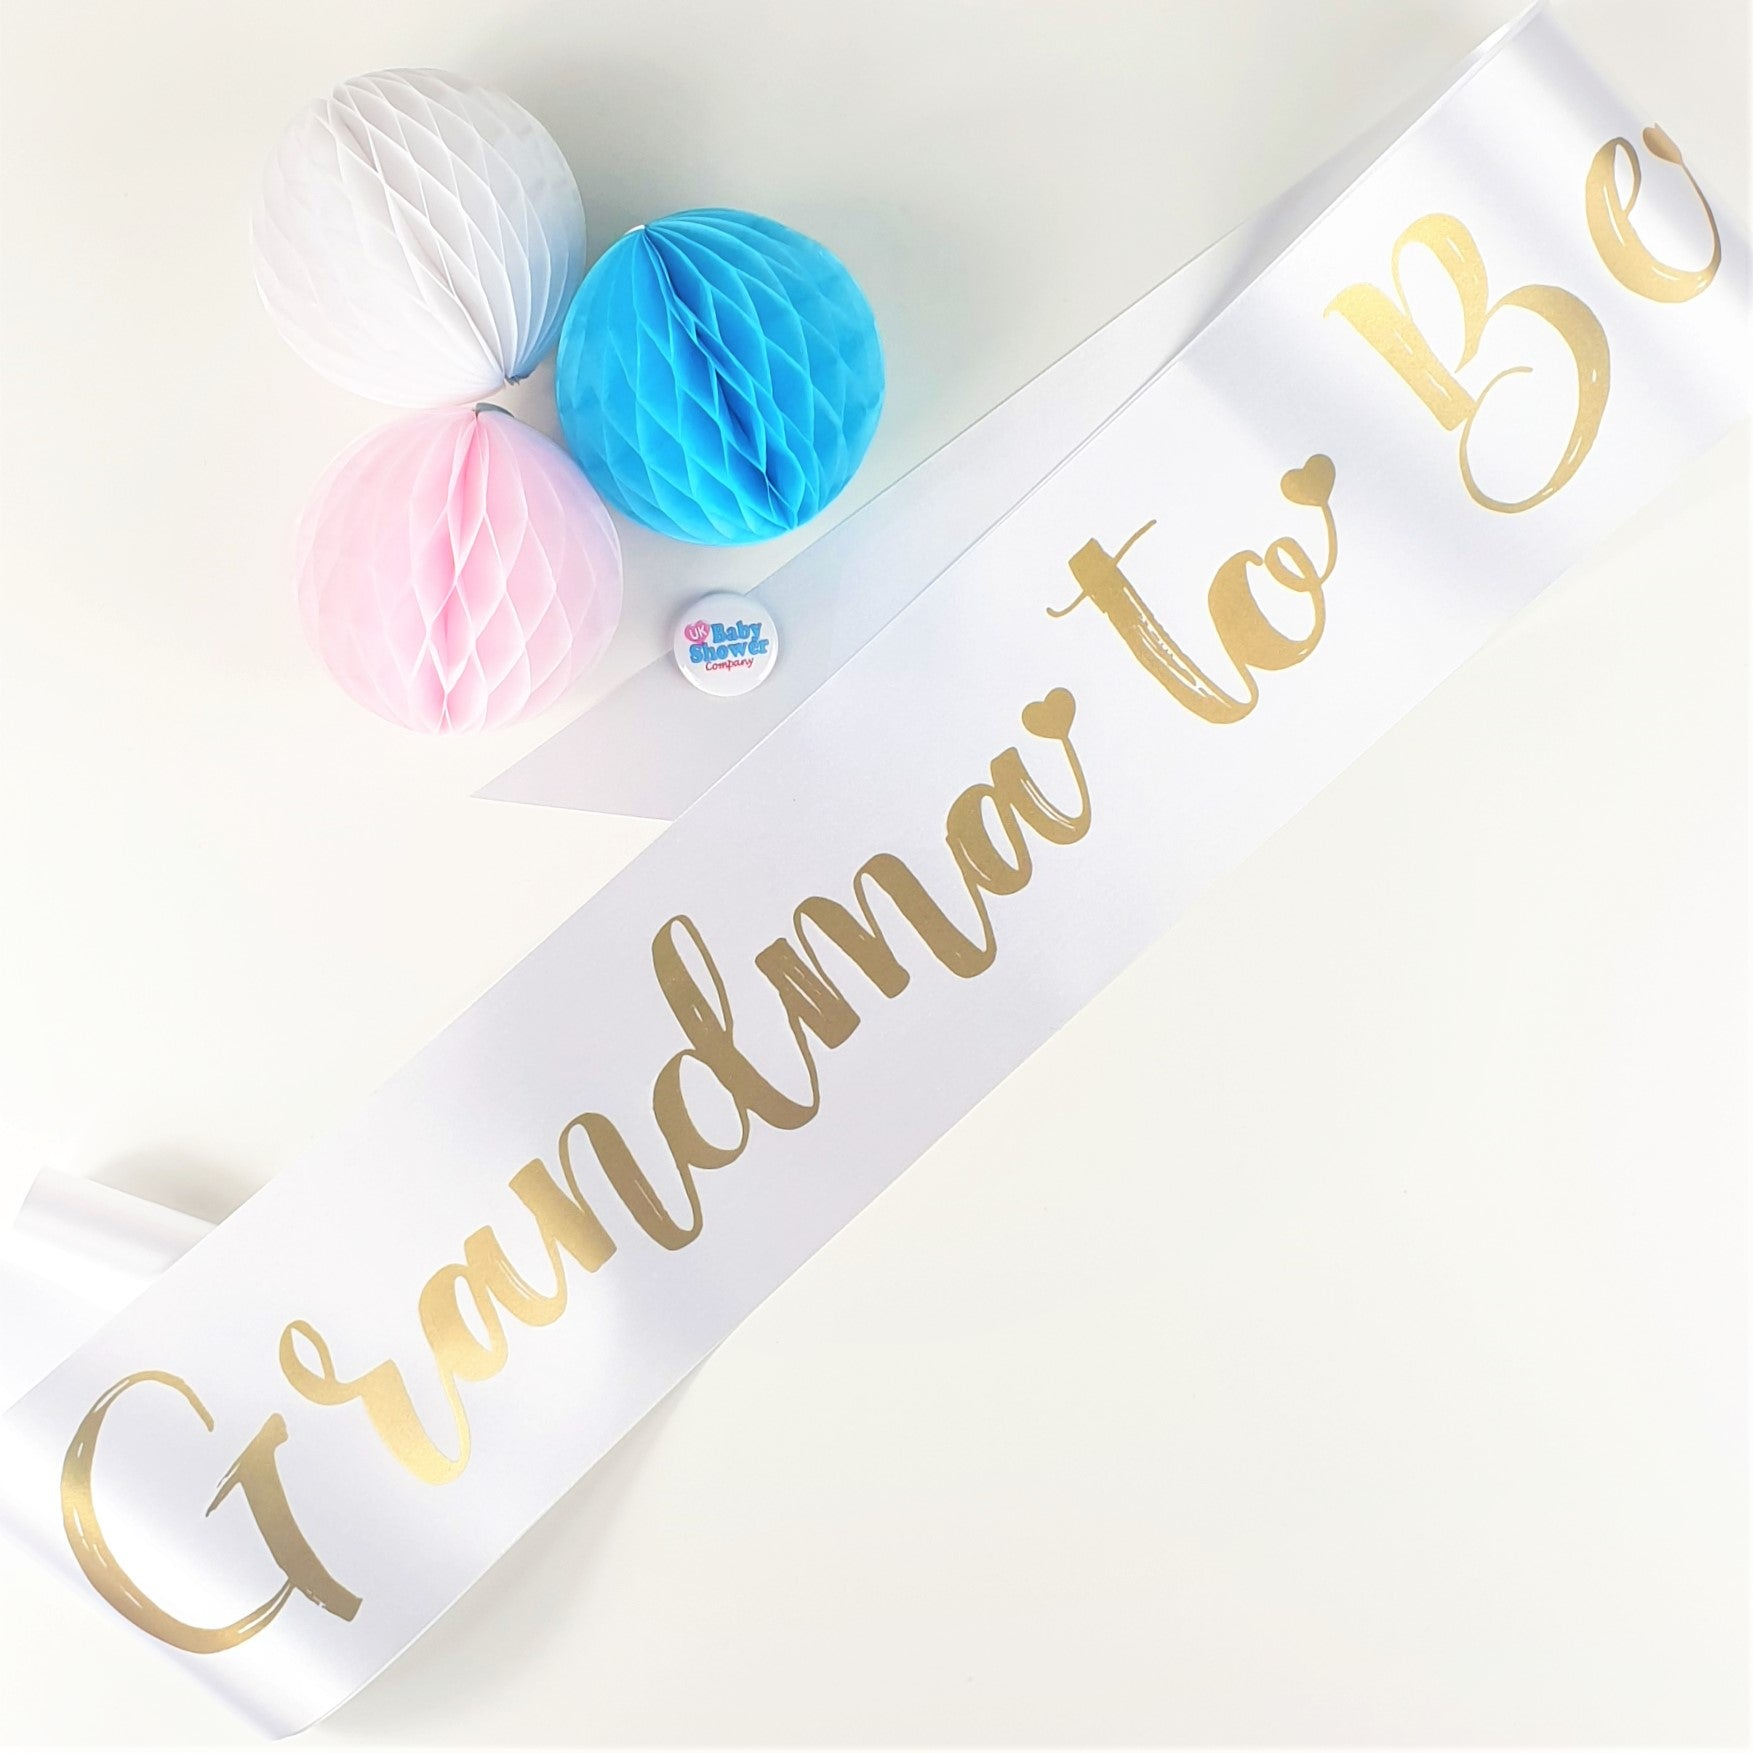 Grandma to Be Sash - White